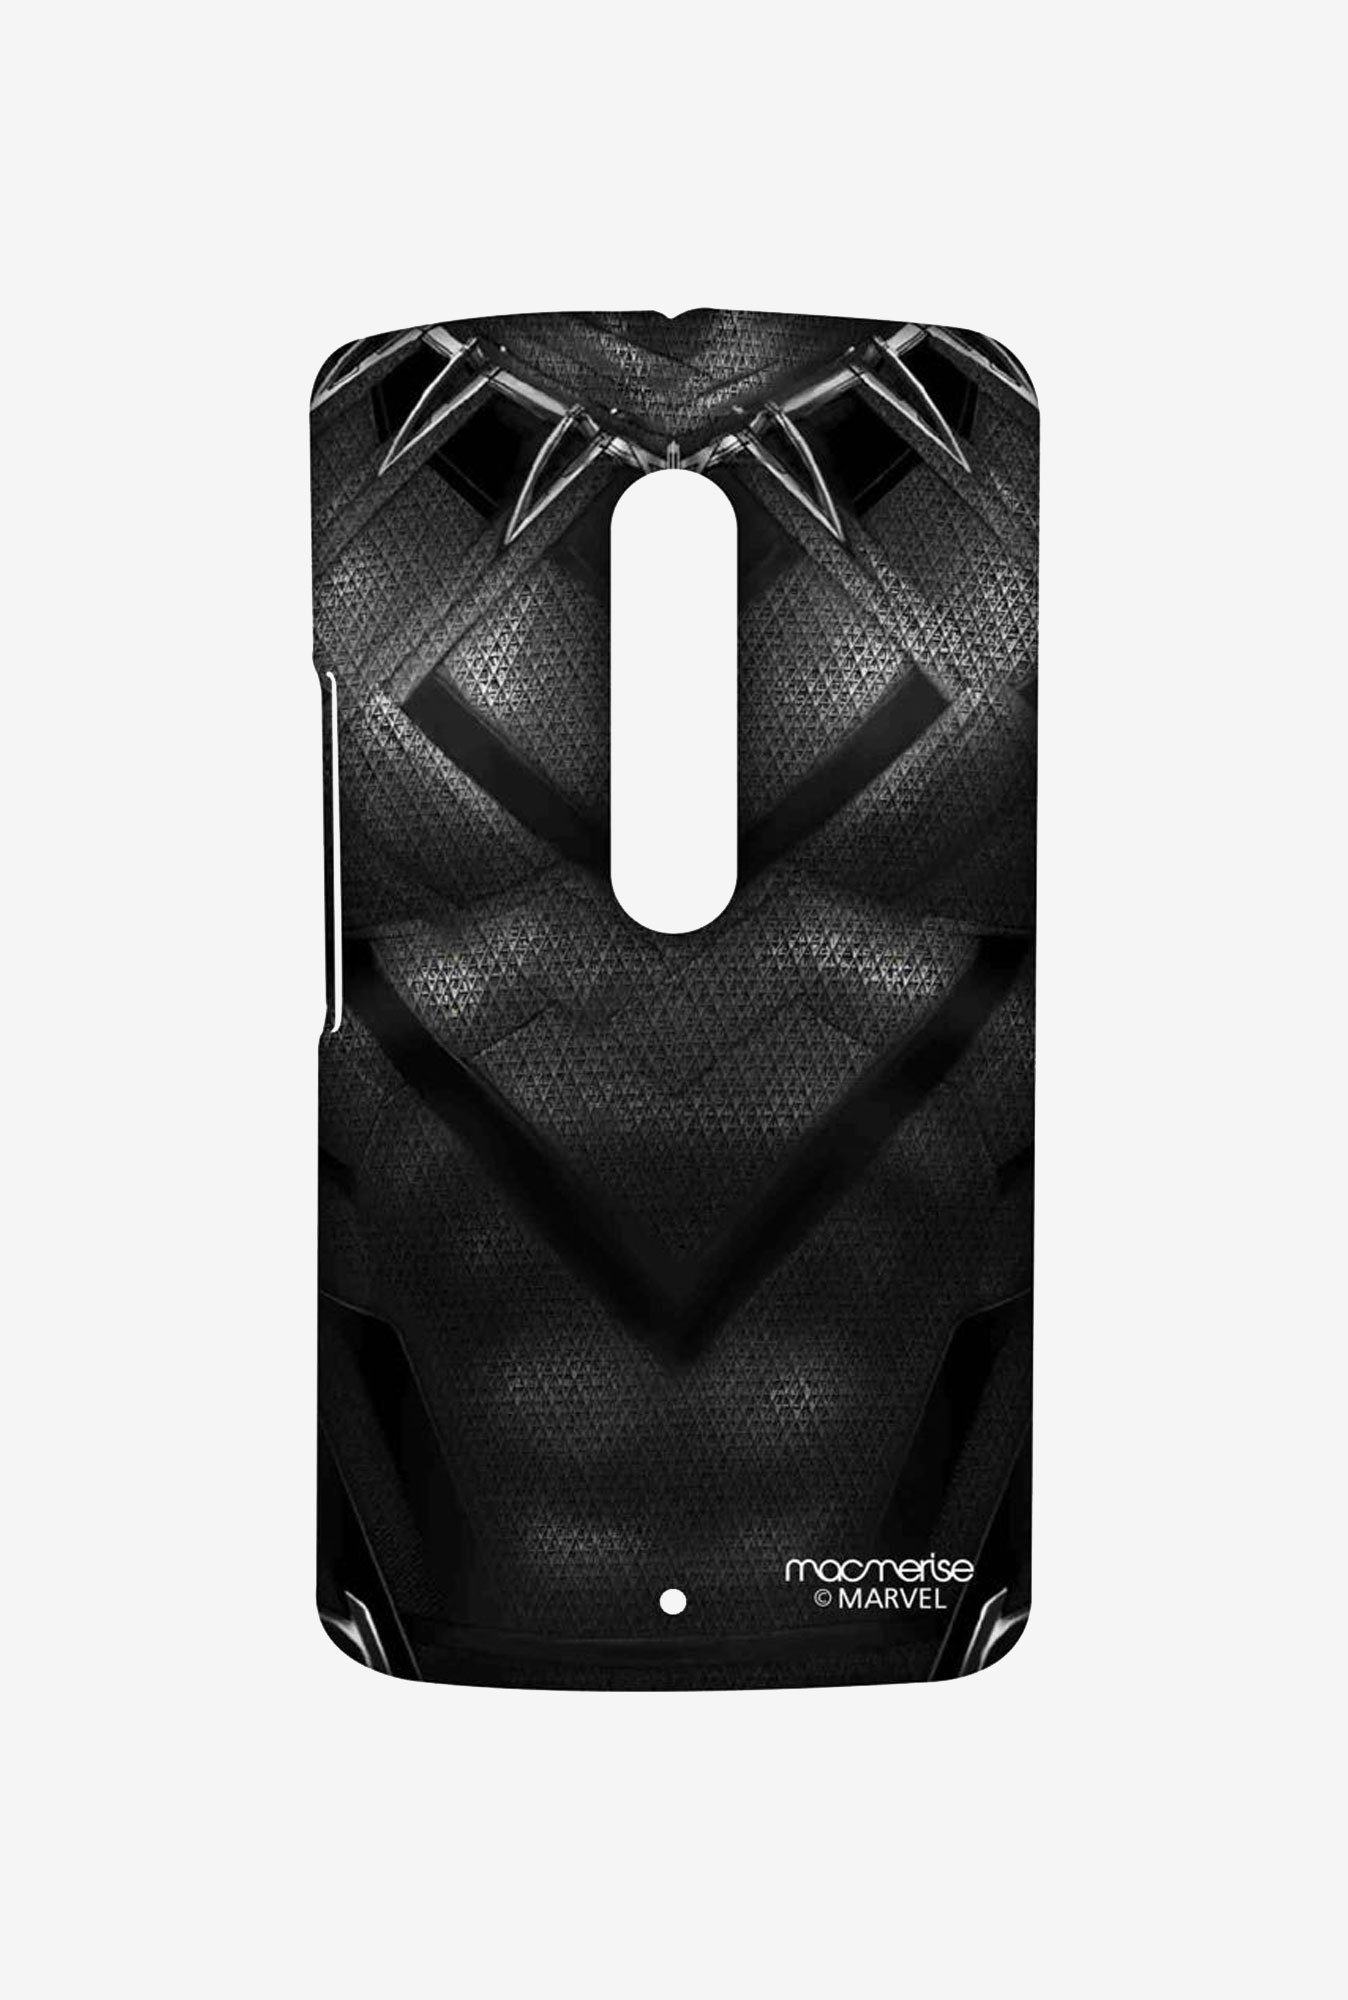 Macmerise Suit up Black Panther Sublime Case for Moto X Play